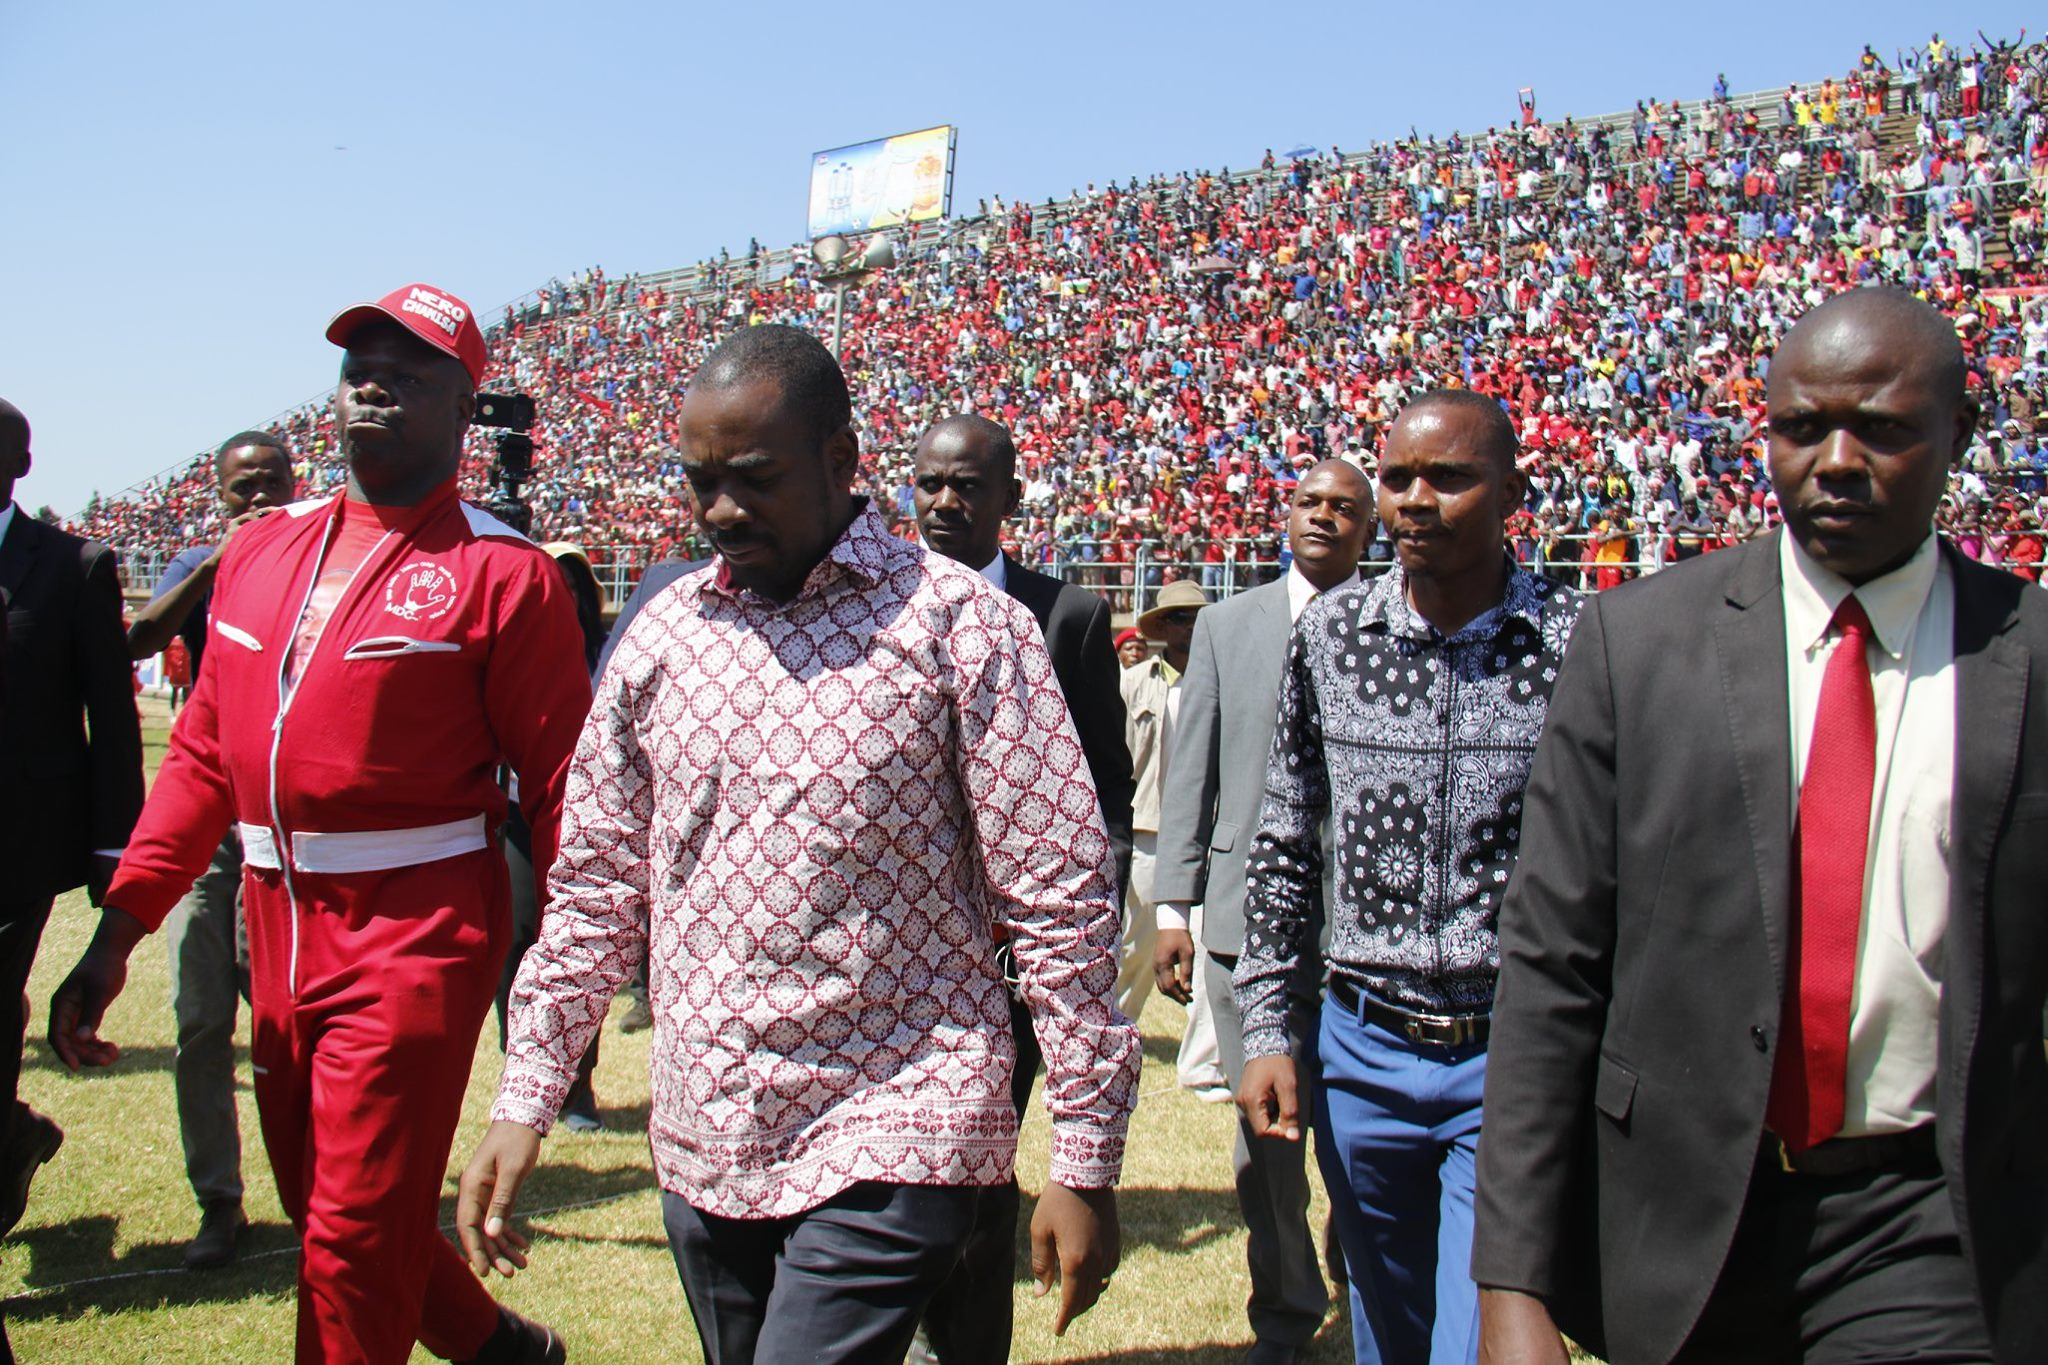 'Change is coming,' says Chamisa